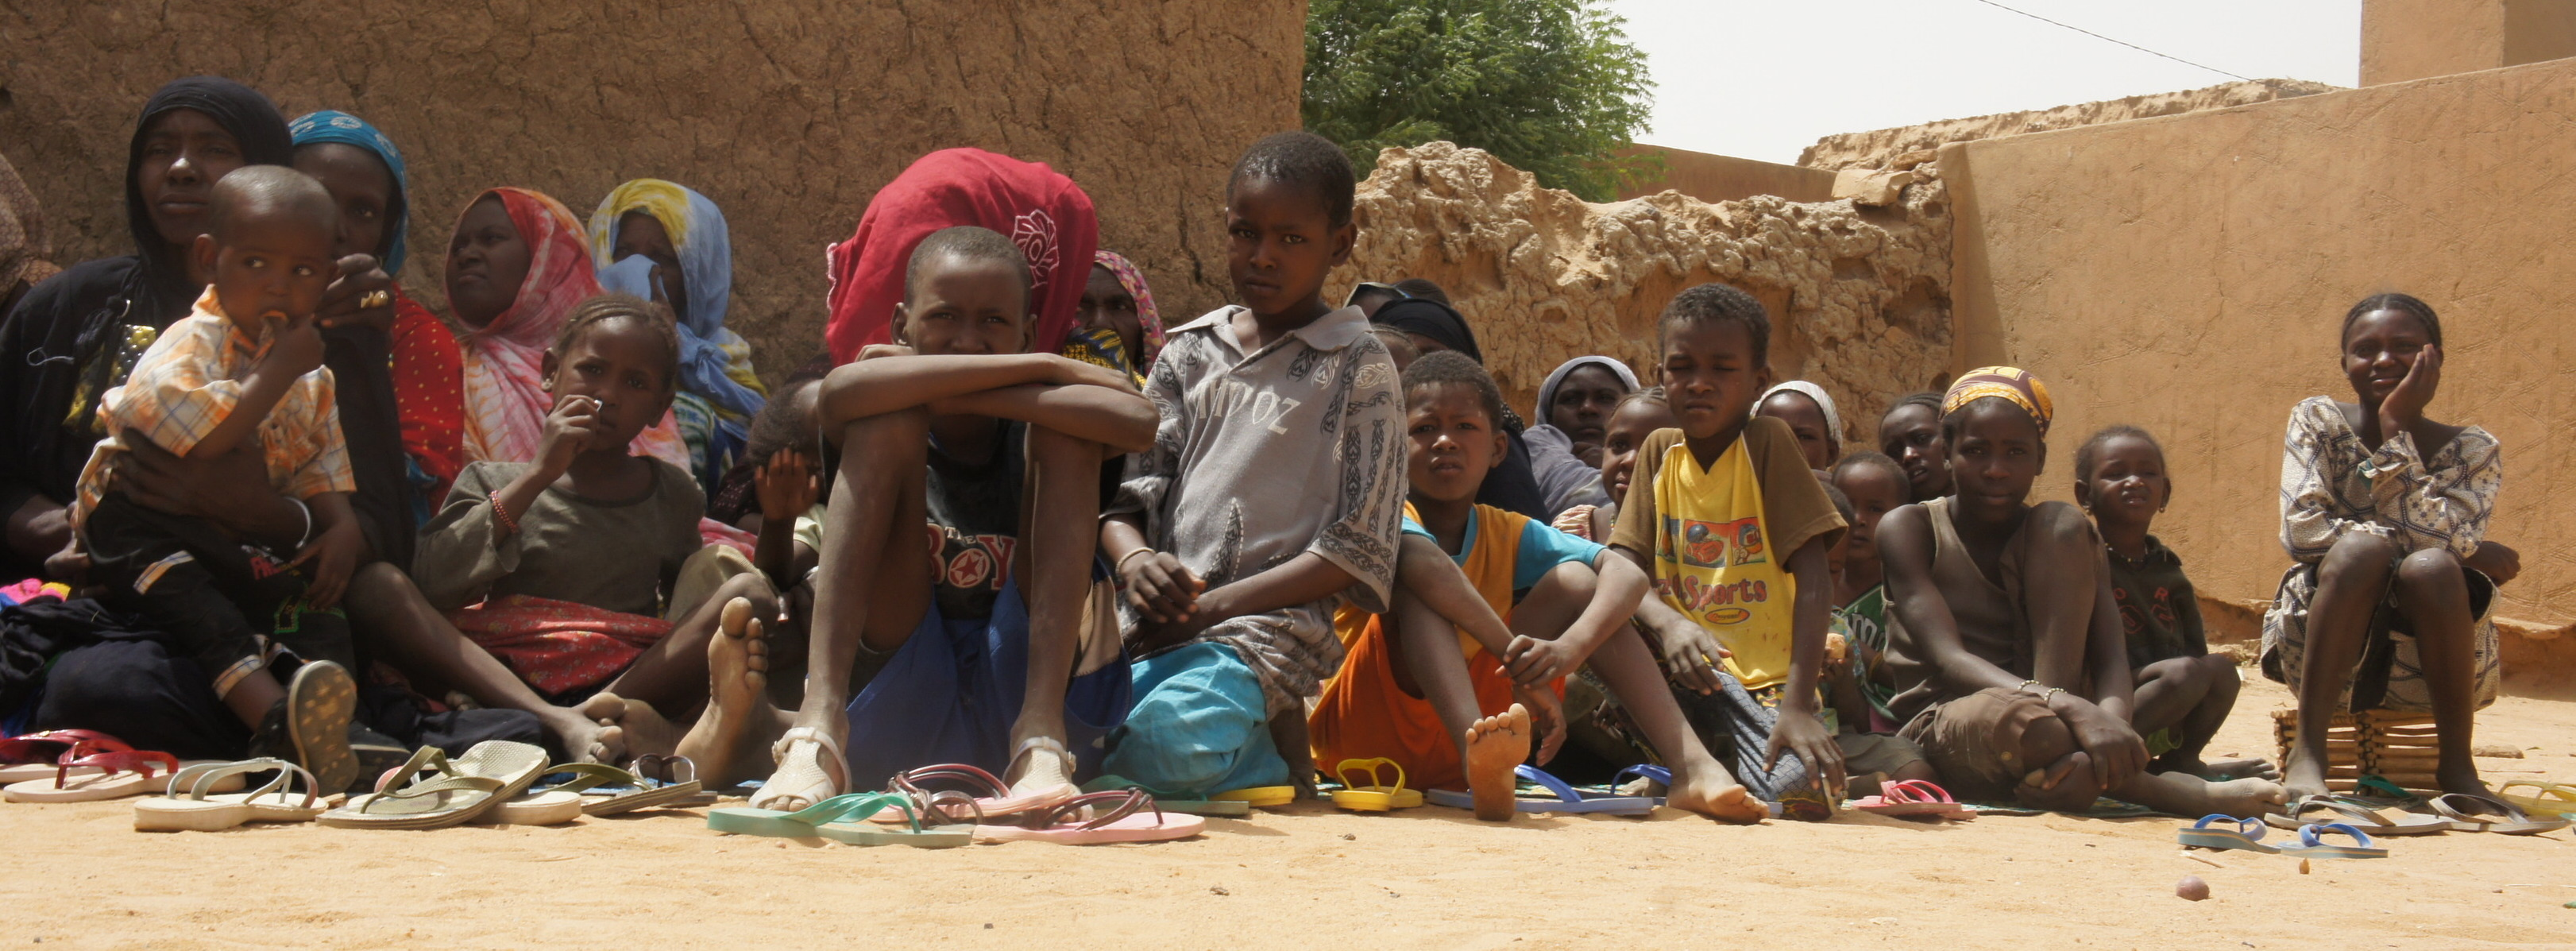 Displaced women and children in Mali, 2012